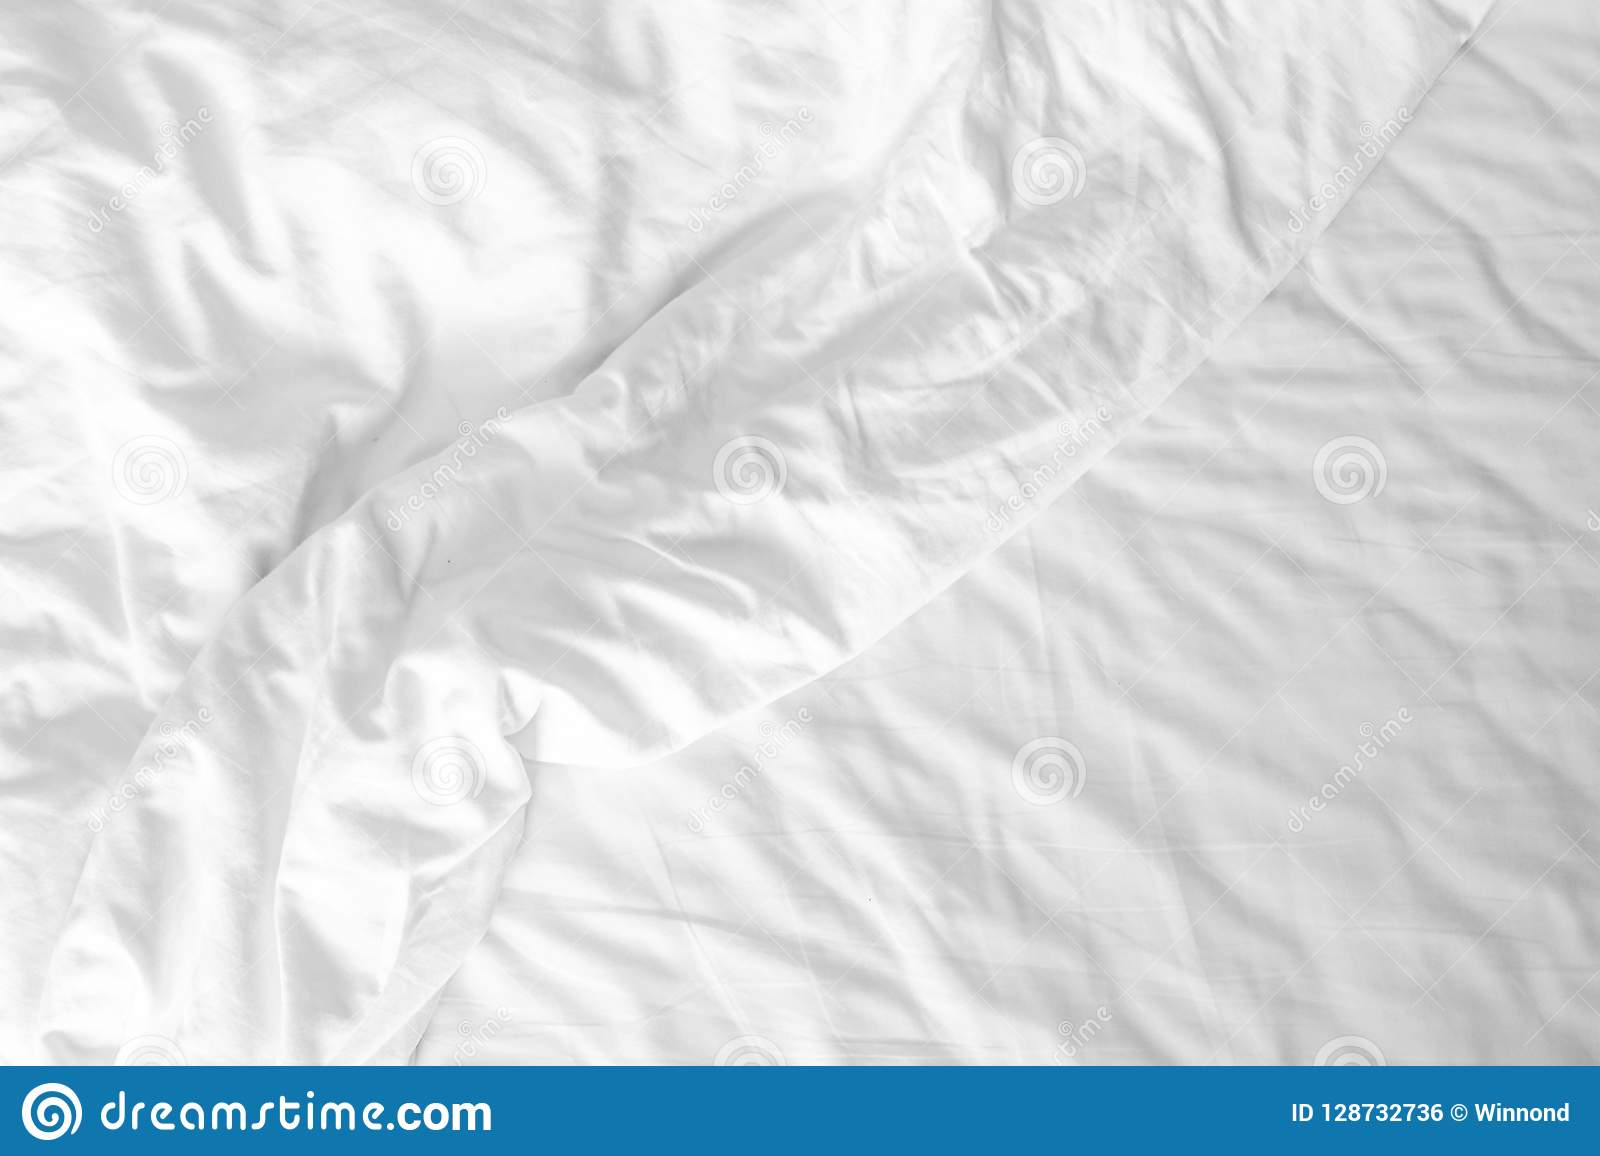 White bed sheets background Creative Messy White Bed Sheets Background Istock Messy White Bed Sheets Stock Photo Image Of Elegant 128732736